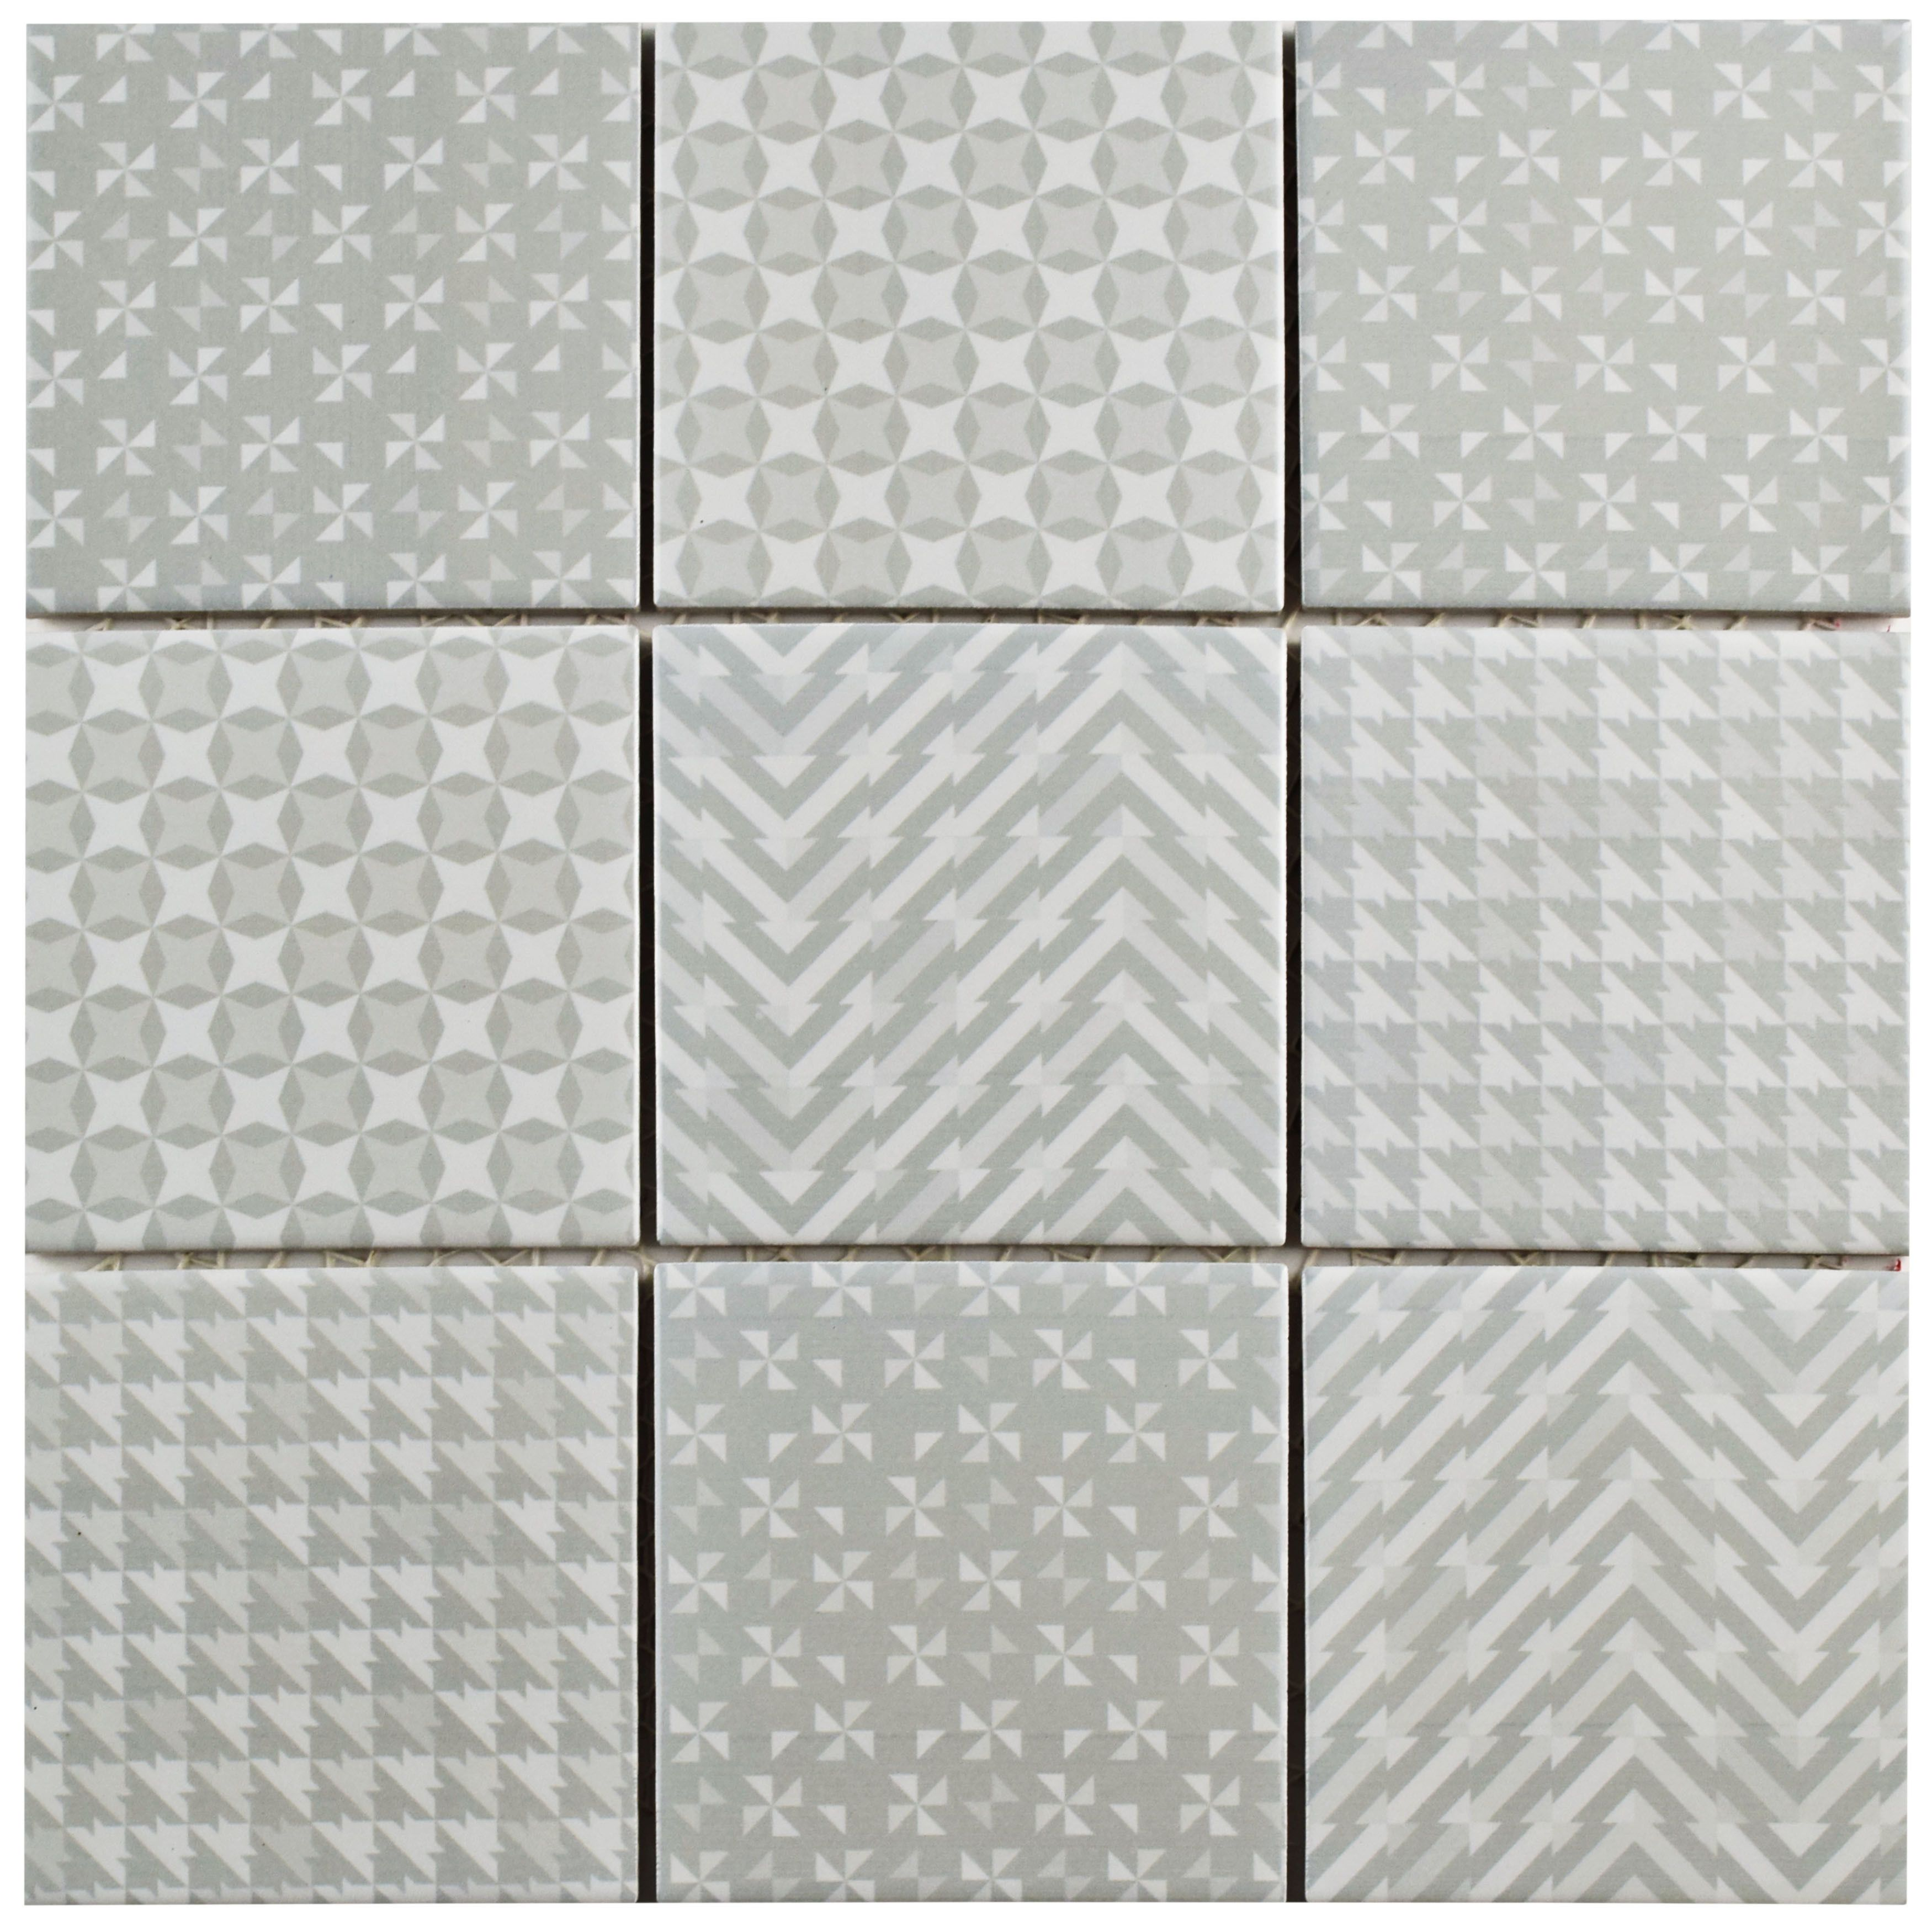 The SomerTile 11.625x11.625 Inch Geoshine Grey Porcelain Floor And Wall Tile  Captures